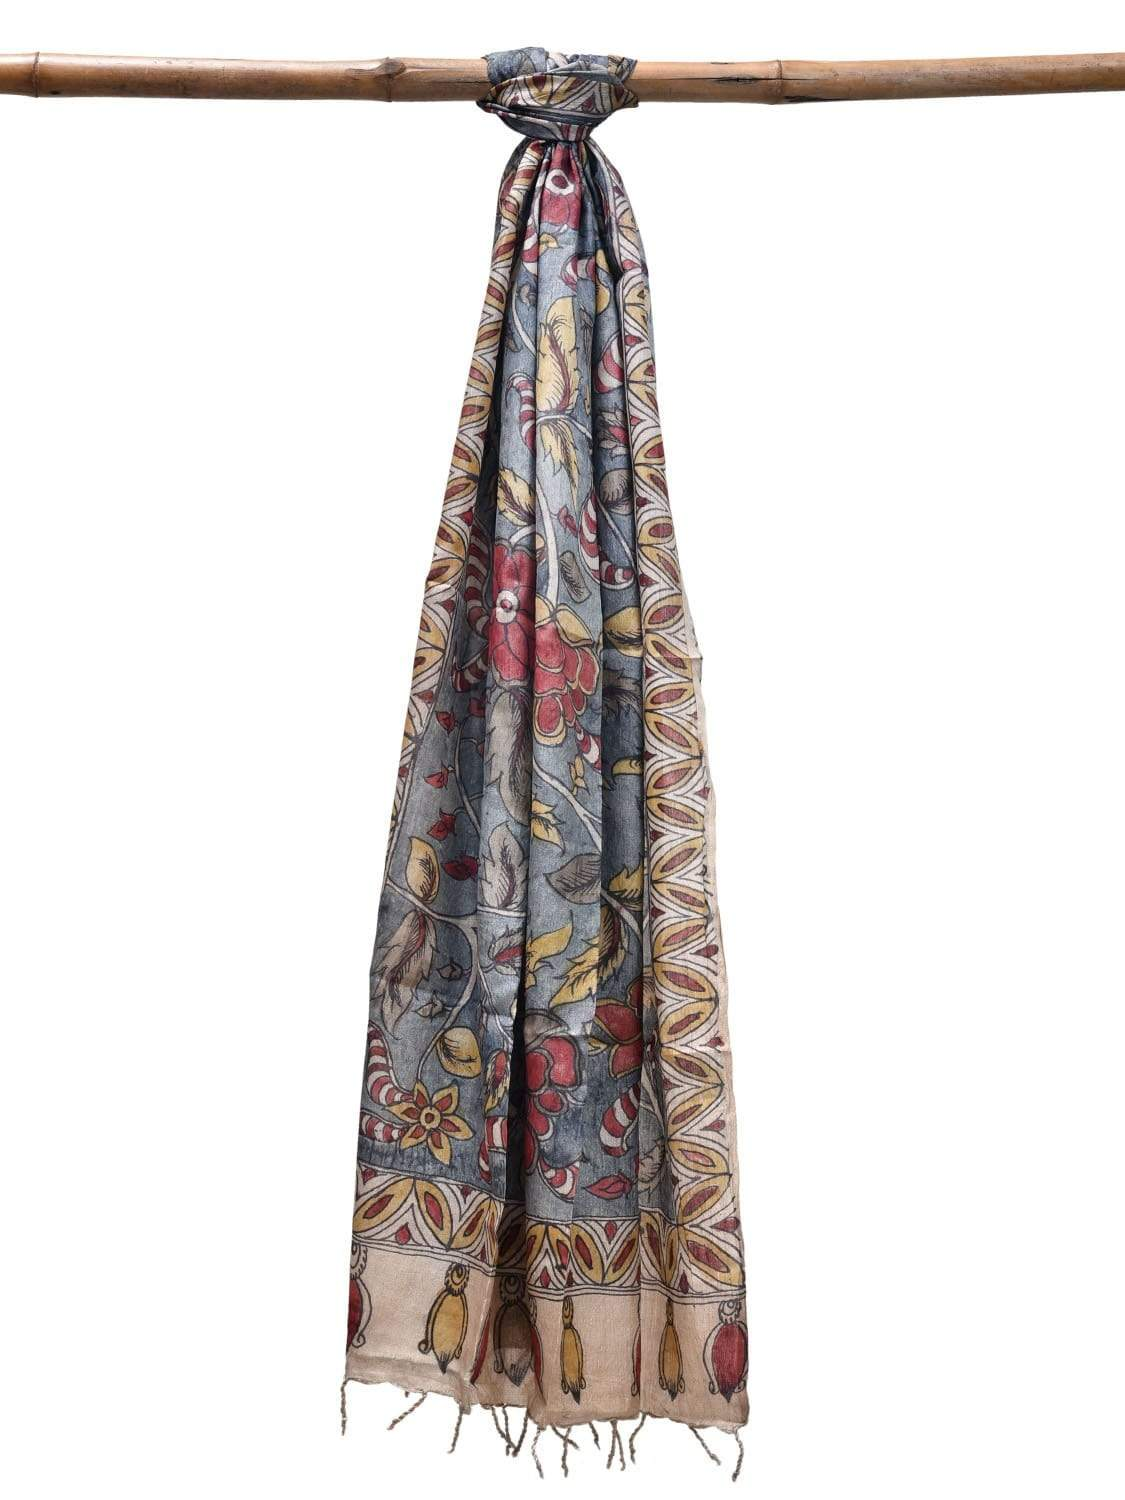 Blue Kalamkari Hand Painted Tussar Dupatta with Floral Design ds1906